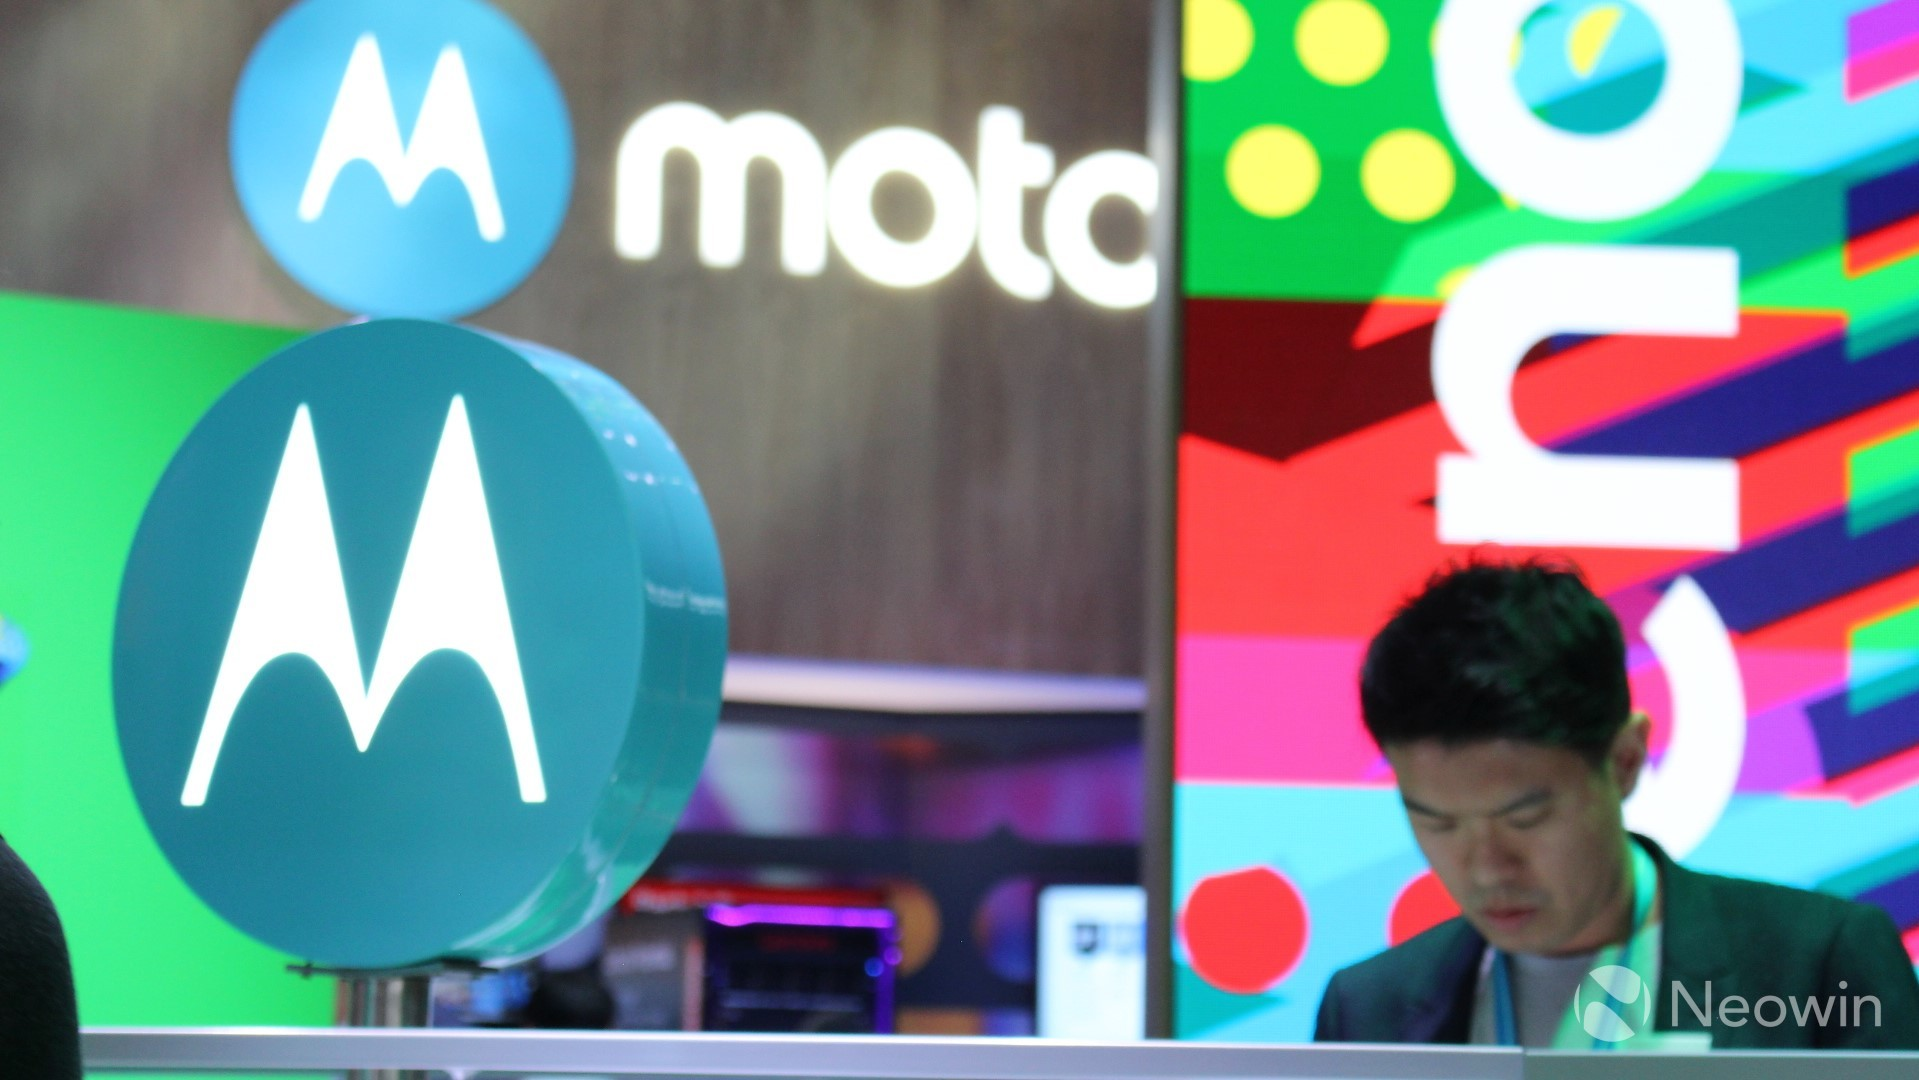 Moto tablet with productivity mode rumored to be in the works